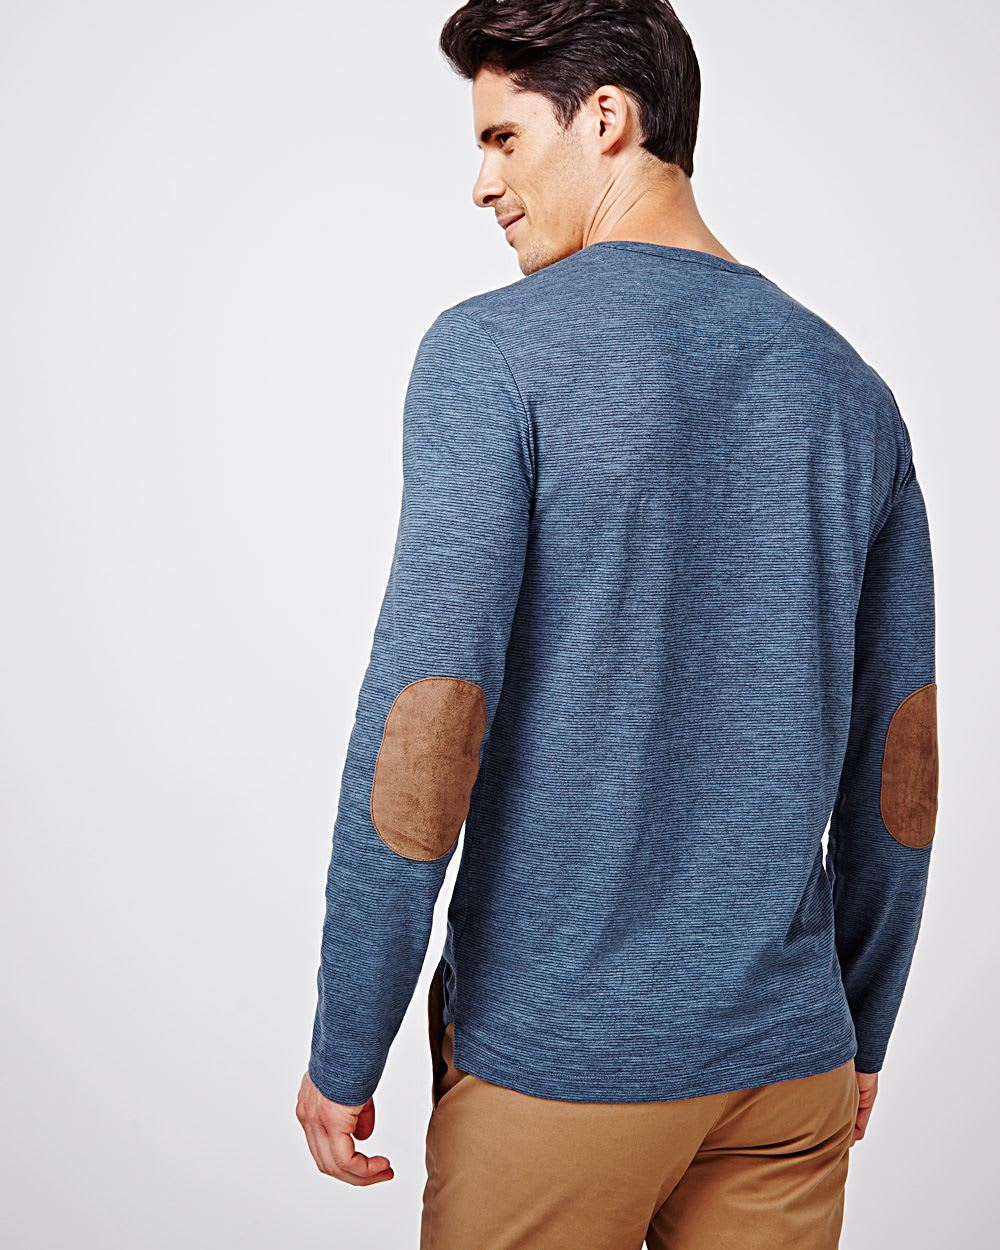 Striped Henley T Shirt With Elbow Patches Rw Co